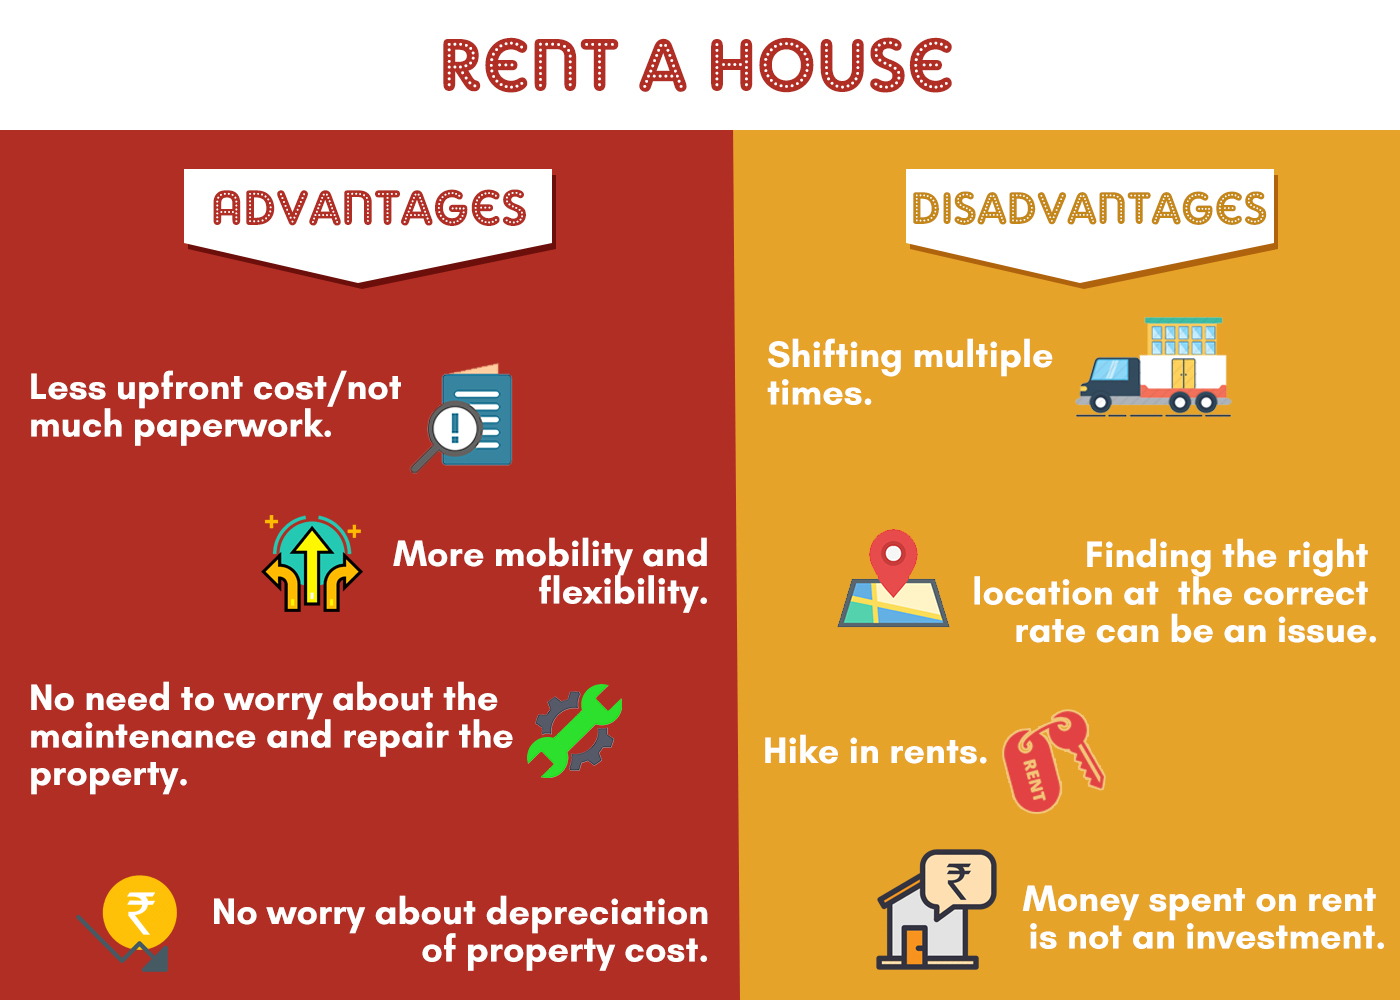 Advantage and Disadvantage of Renting a House